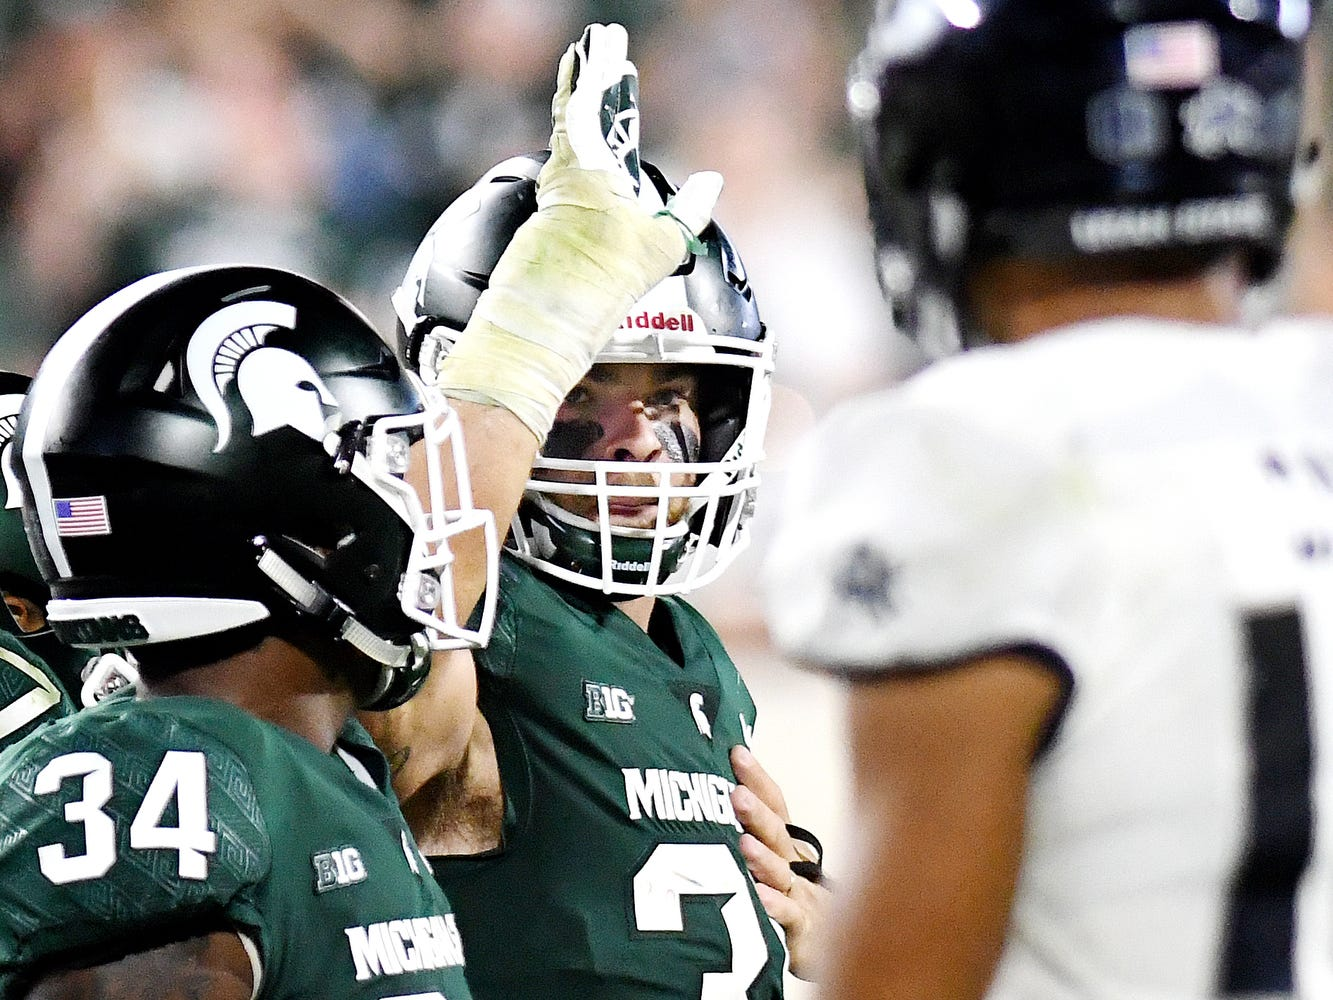 Michigan State's Joe Bachie, center, celebrates after his turnover while Utah State's quarterback Jordan Love, right, looks on during the fourth quarter on Friday, Aug. 31, 2018, at Spartan Stadium in East Lansing.